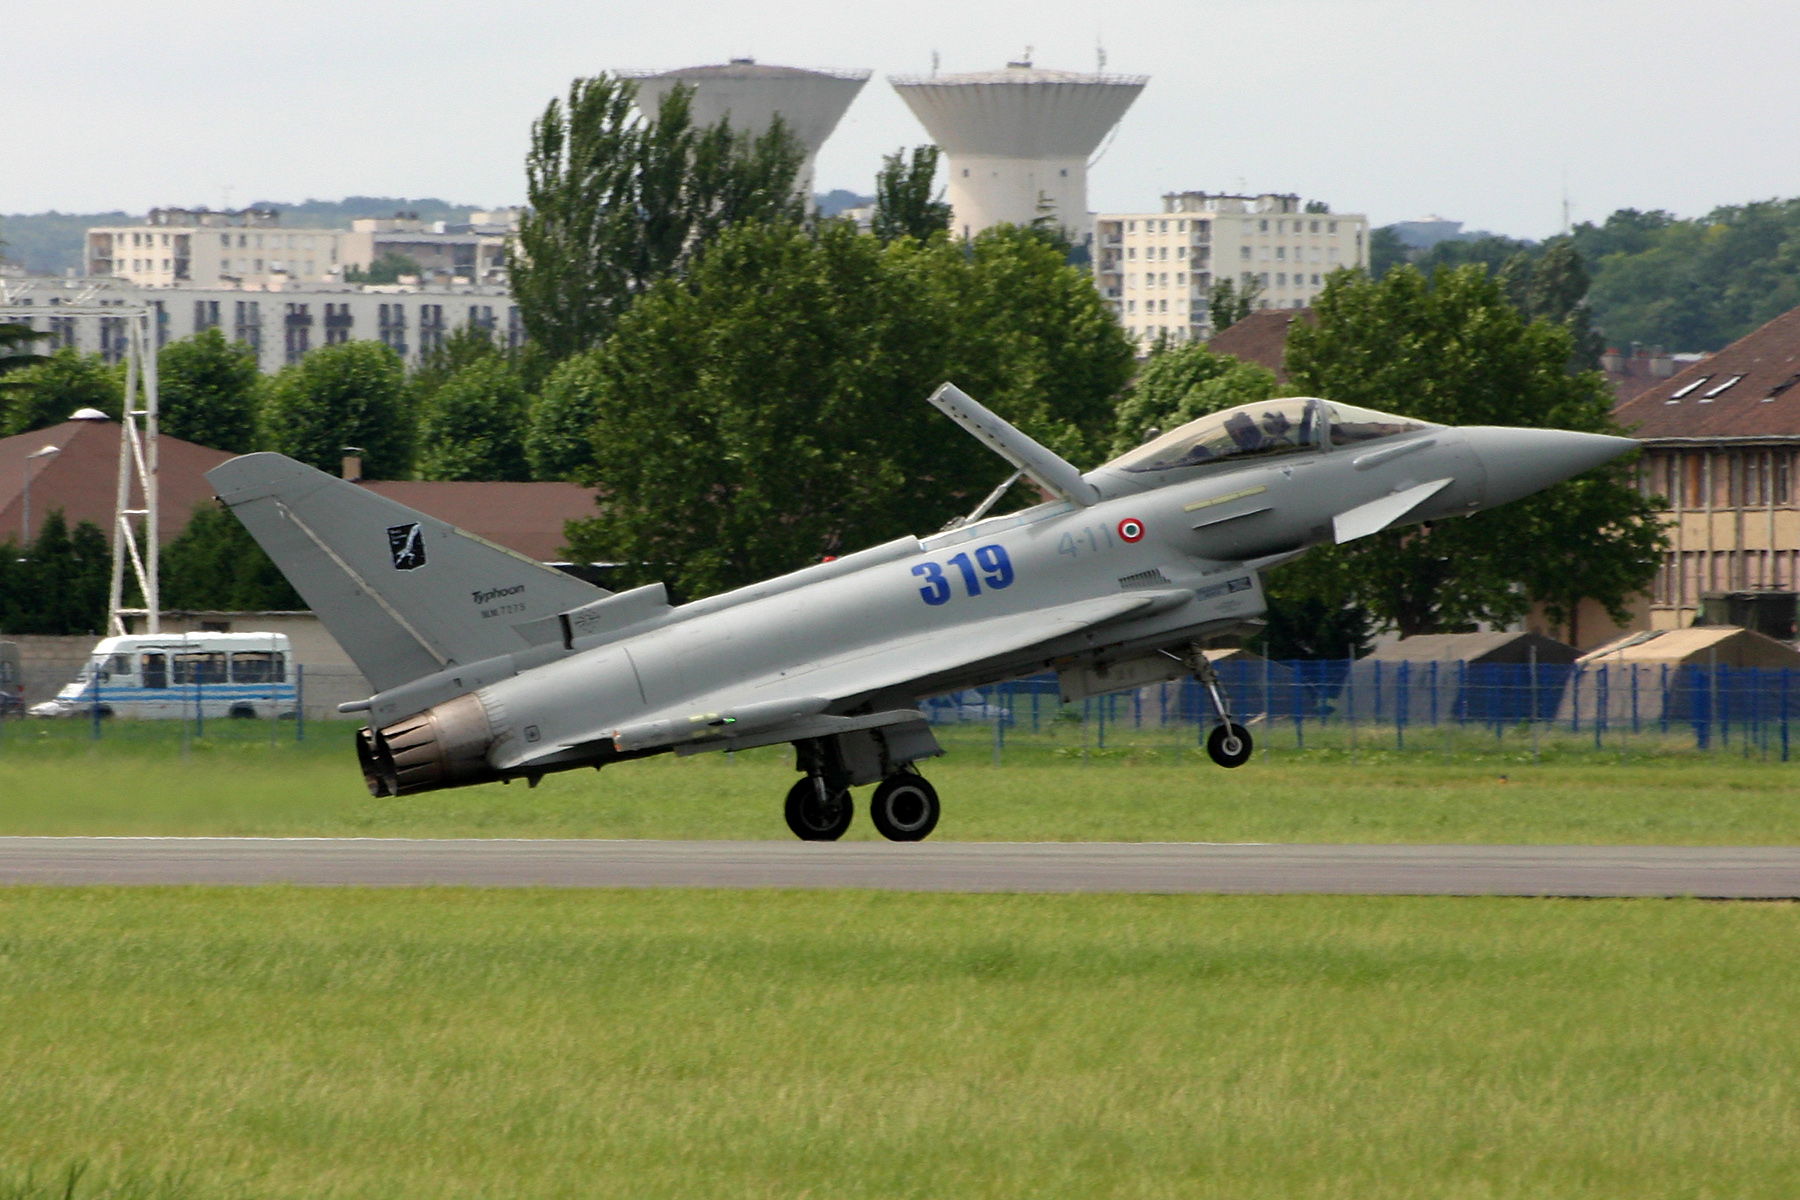 Aterrissage d'un Eurofigther Typhoon